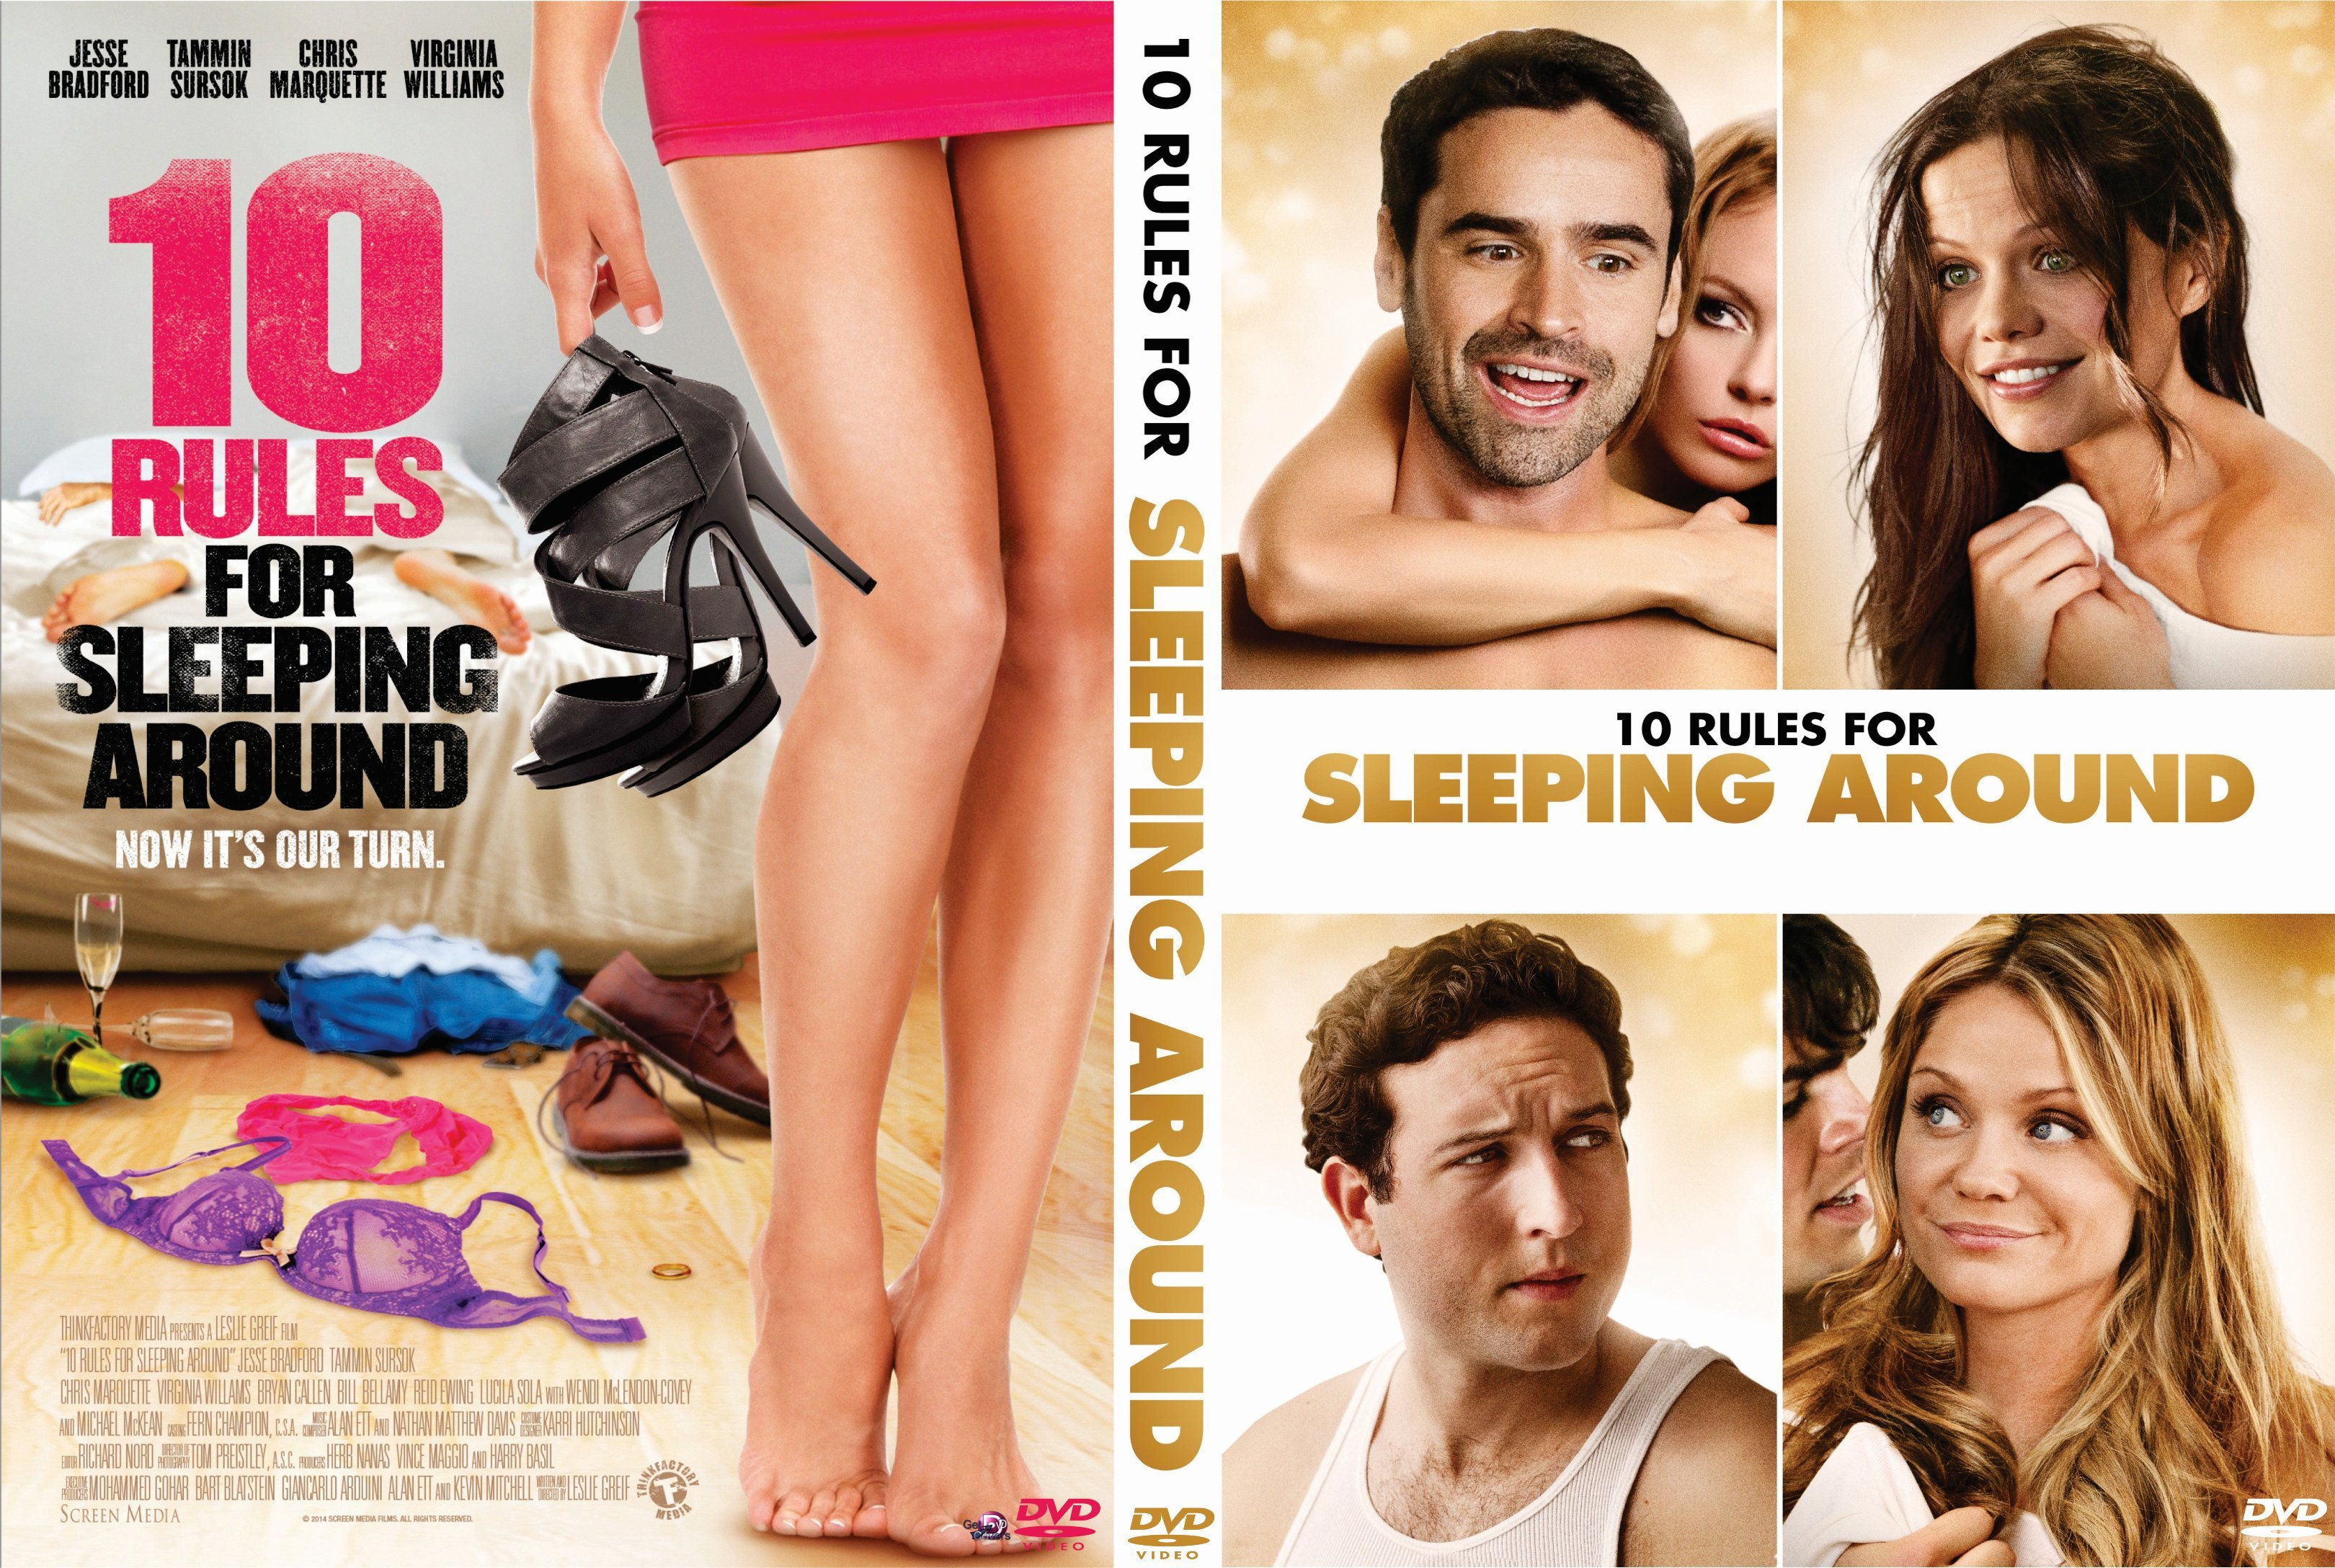 10 Rules for Sleeping Around | Dvd Covers and Labels